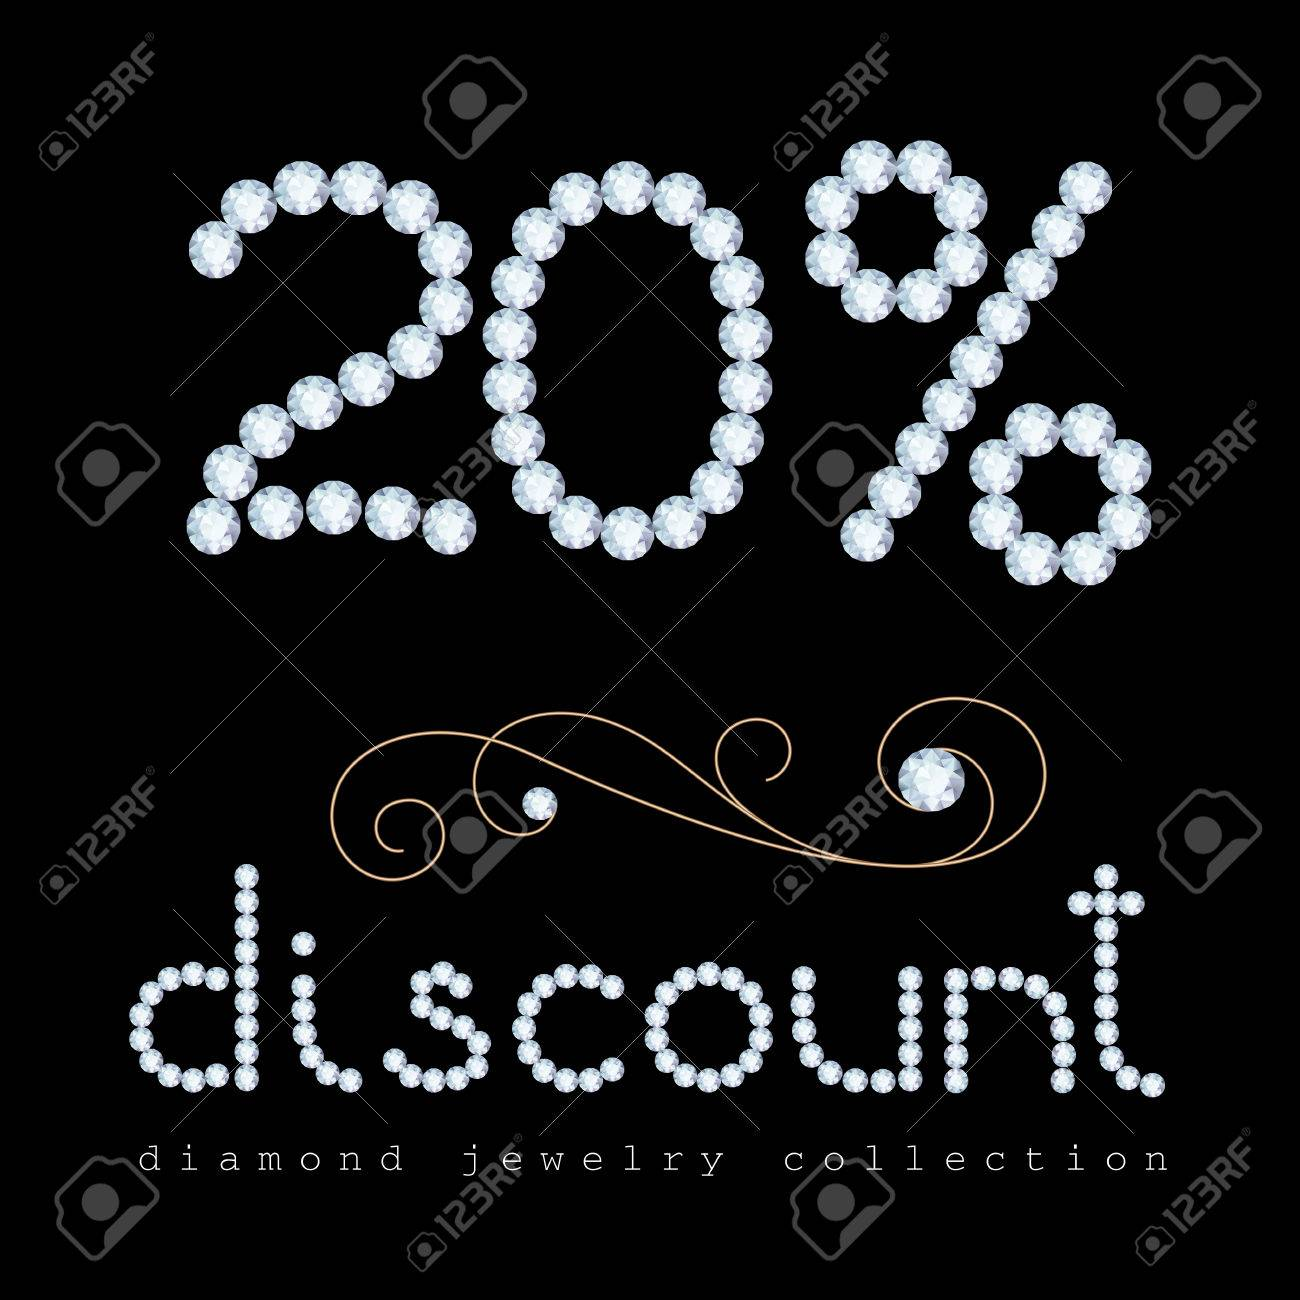 20 Percent Discount Banner, Diamond Jewelry Letters And Digits